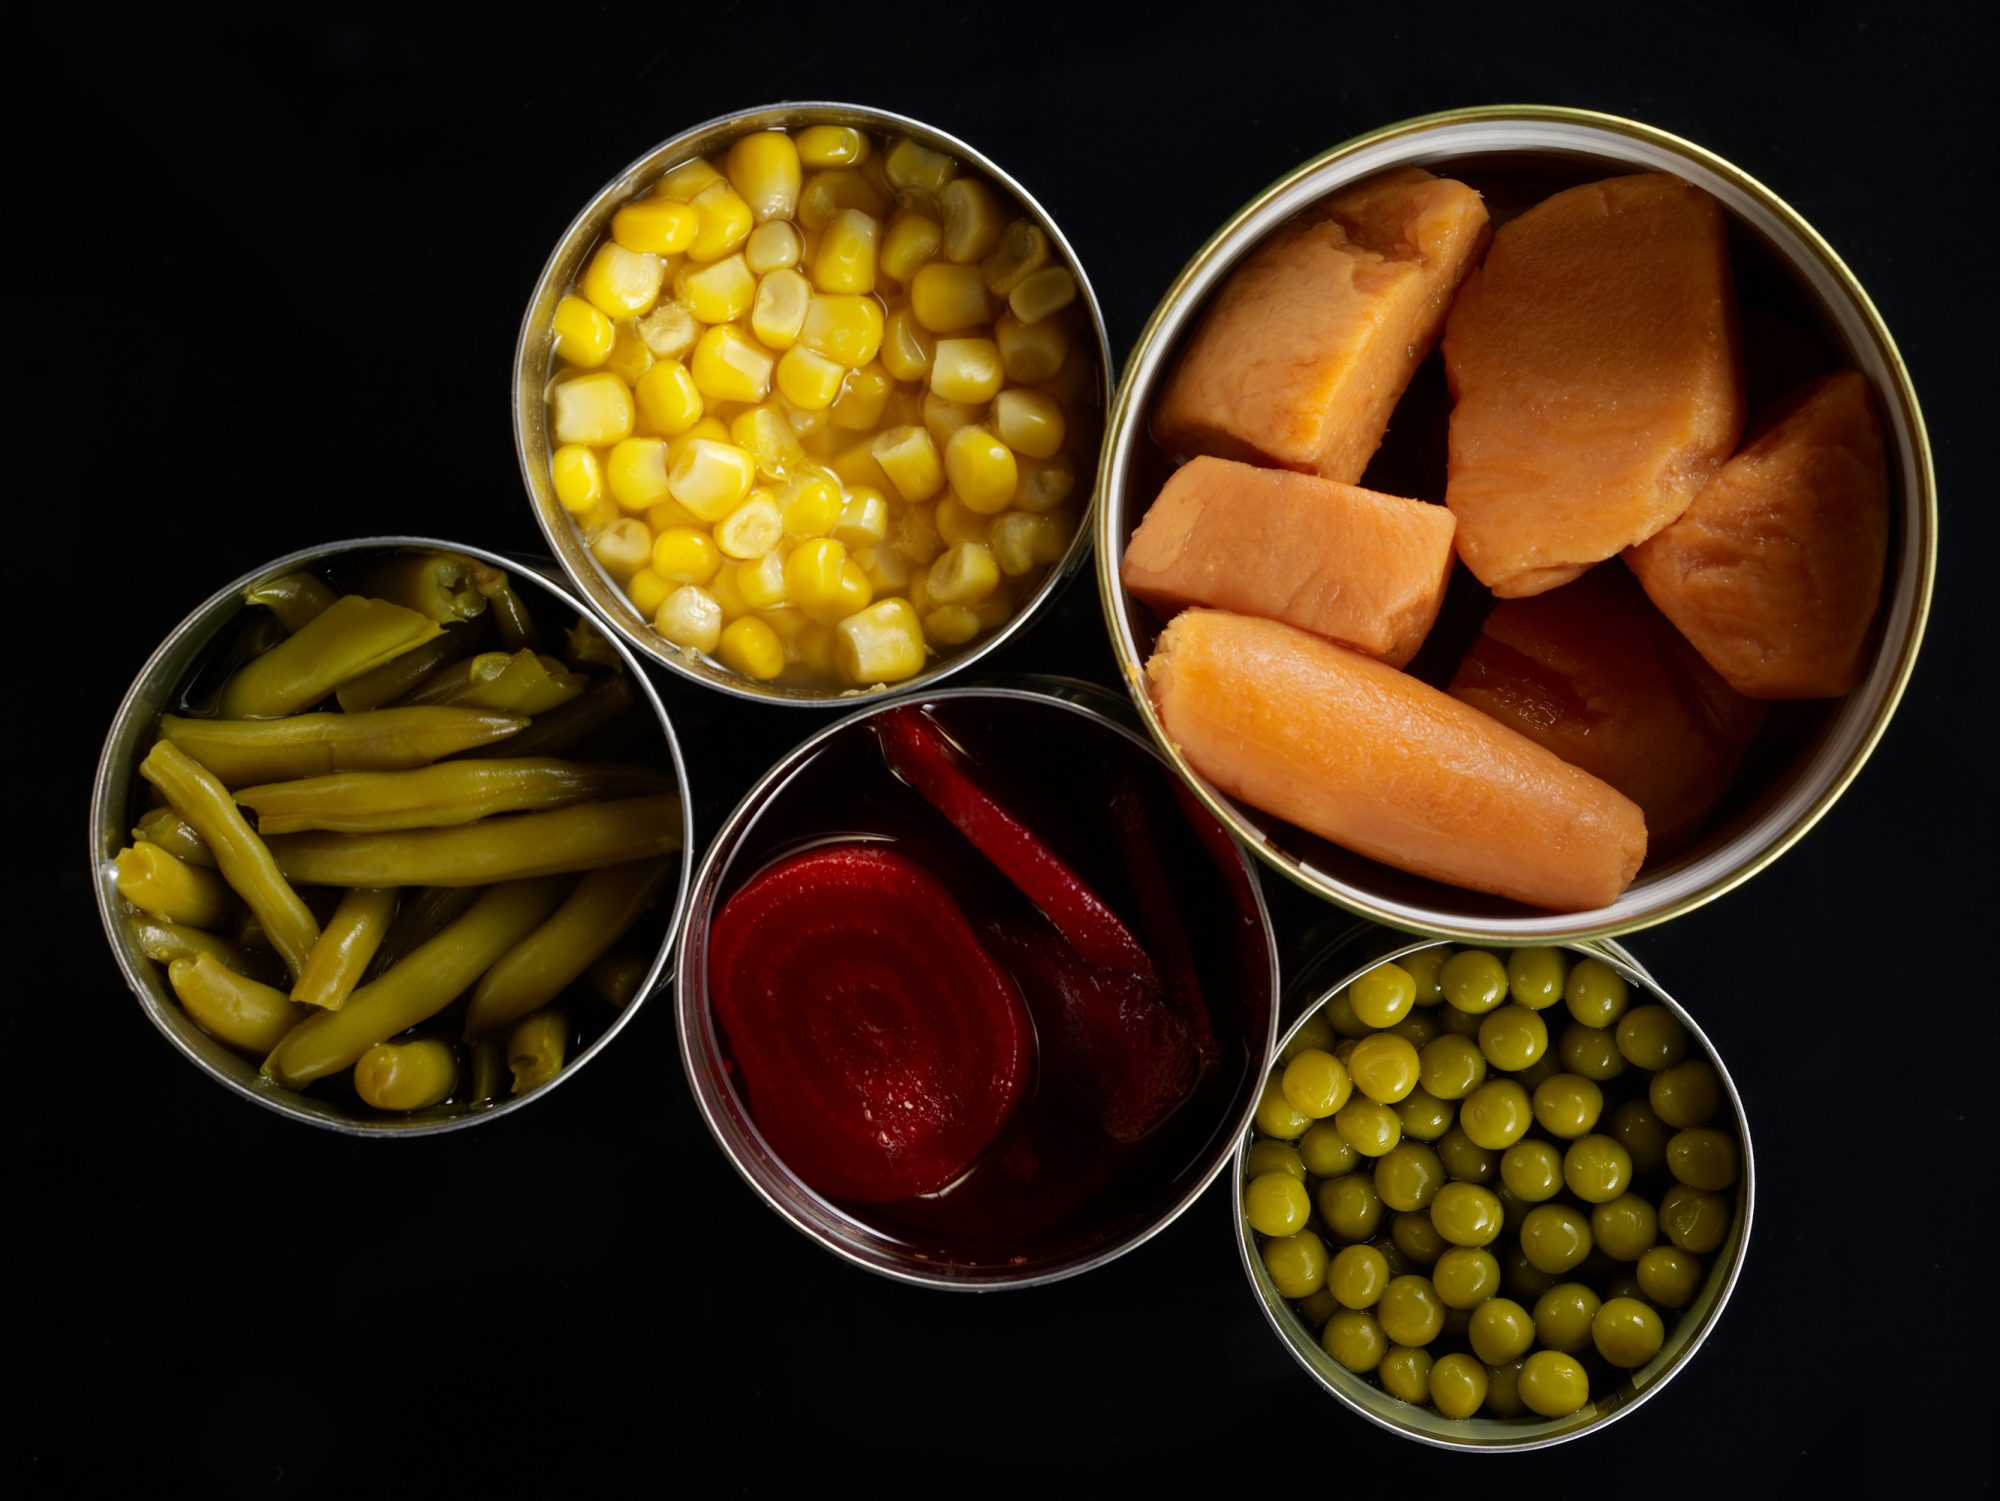 A variety of produce-sweet potato, beans, peas, corn, beets